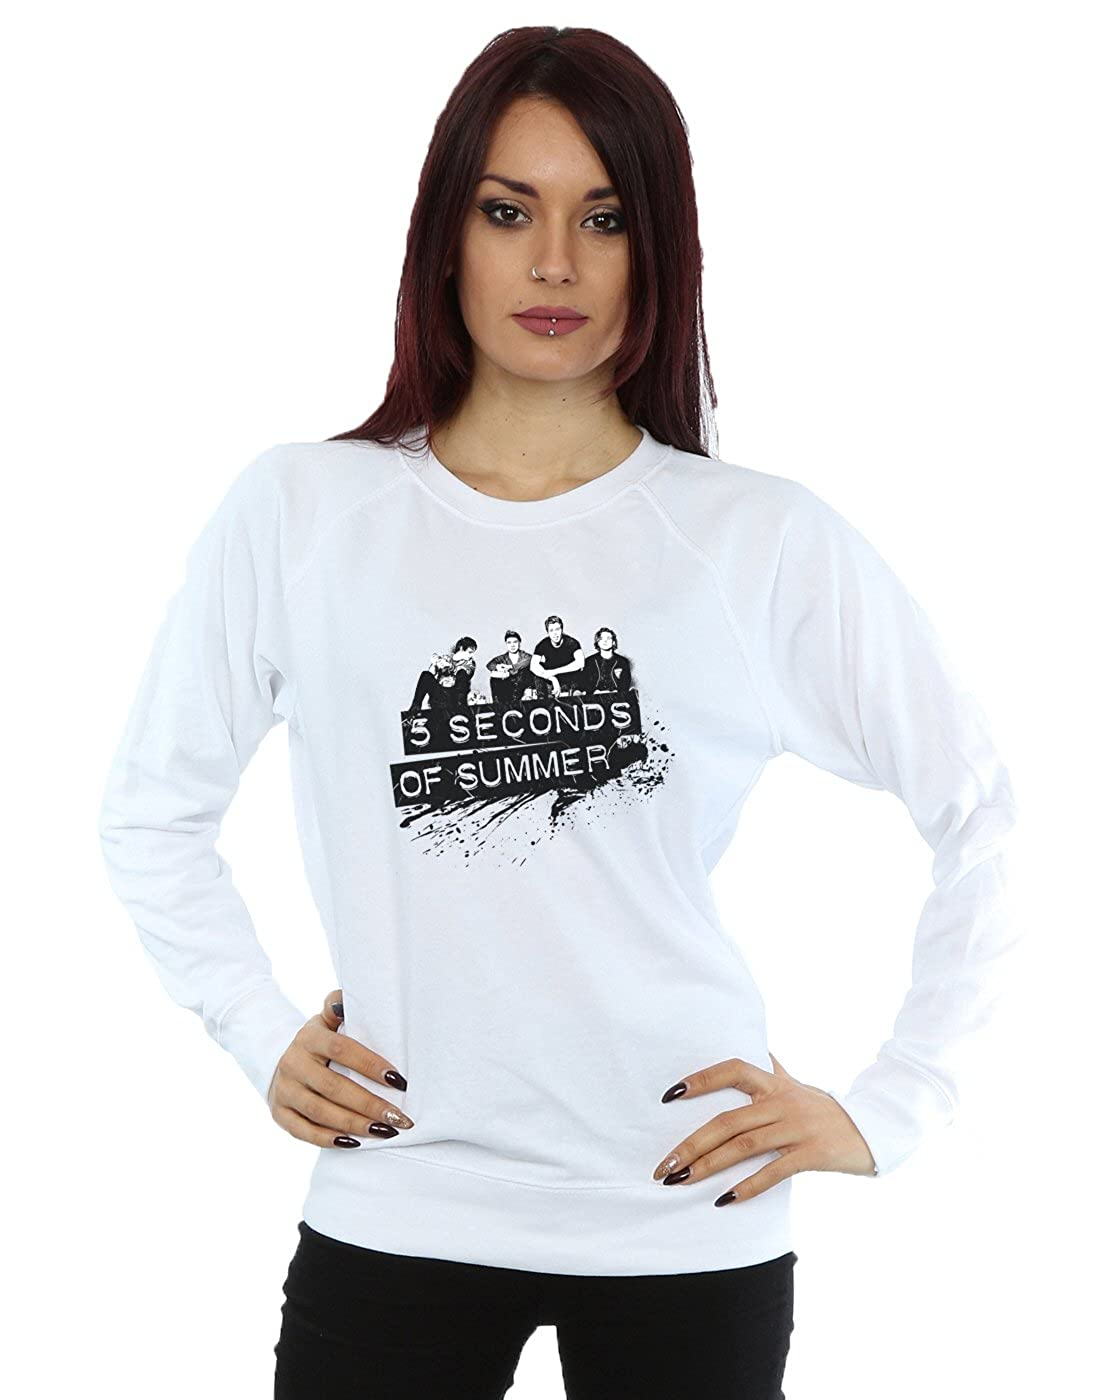 e3110ccdf535 5 Seconds Of Summer Women s Black Splatter Sweatshirt  Amazon.co.uk   Clothing